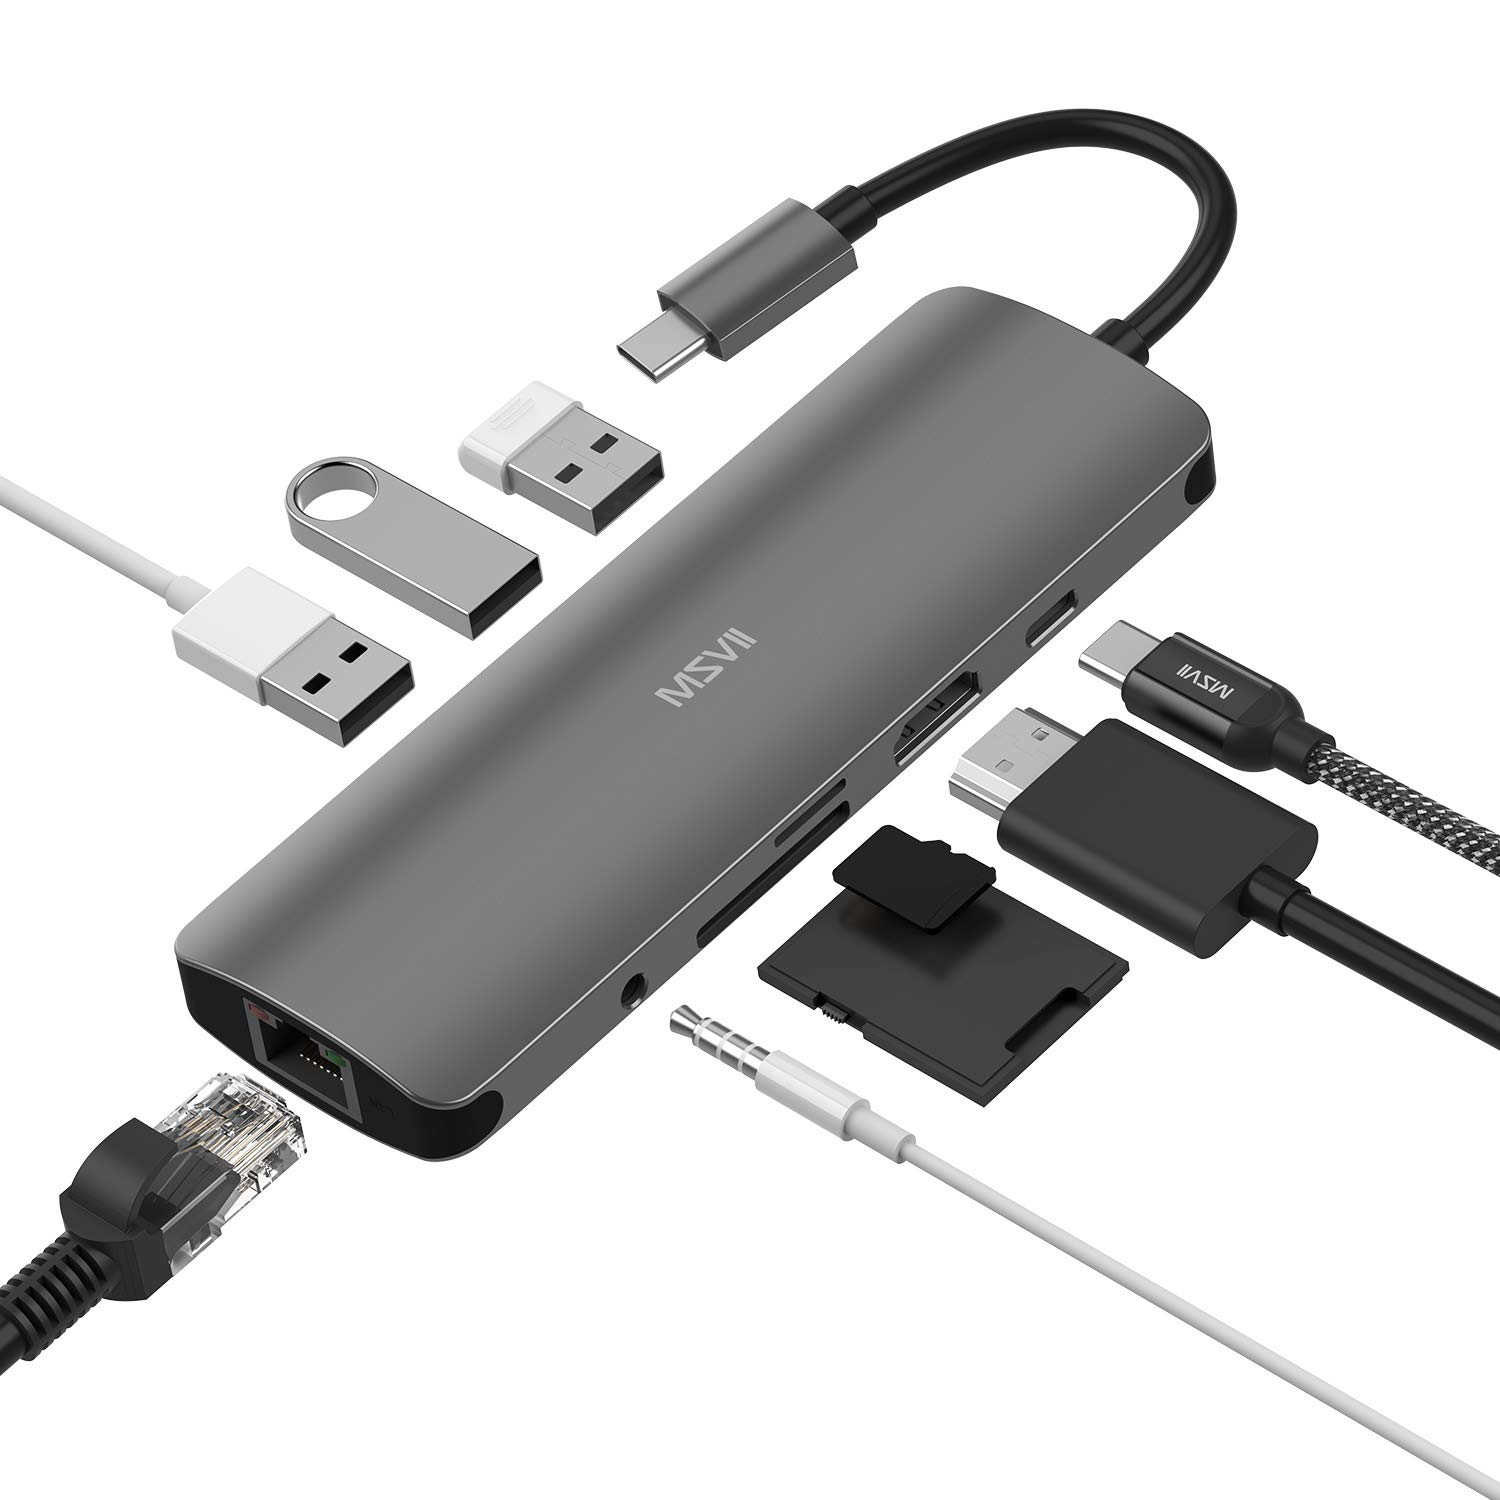 MSVII 9 in 1 USB C Hub, USB Type C Hub 9 Ports Adapter with Ethernet, 4K USB C to HDMI, 3 USB 3.0 Ports, SD/TF Card Reader, 3.5mm Audio Jack, PD Fast Charging for Mac Book Pro and Other Type-C Laptops